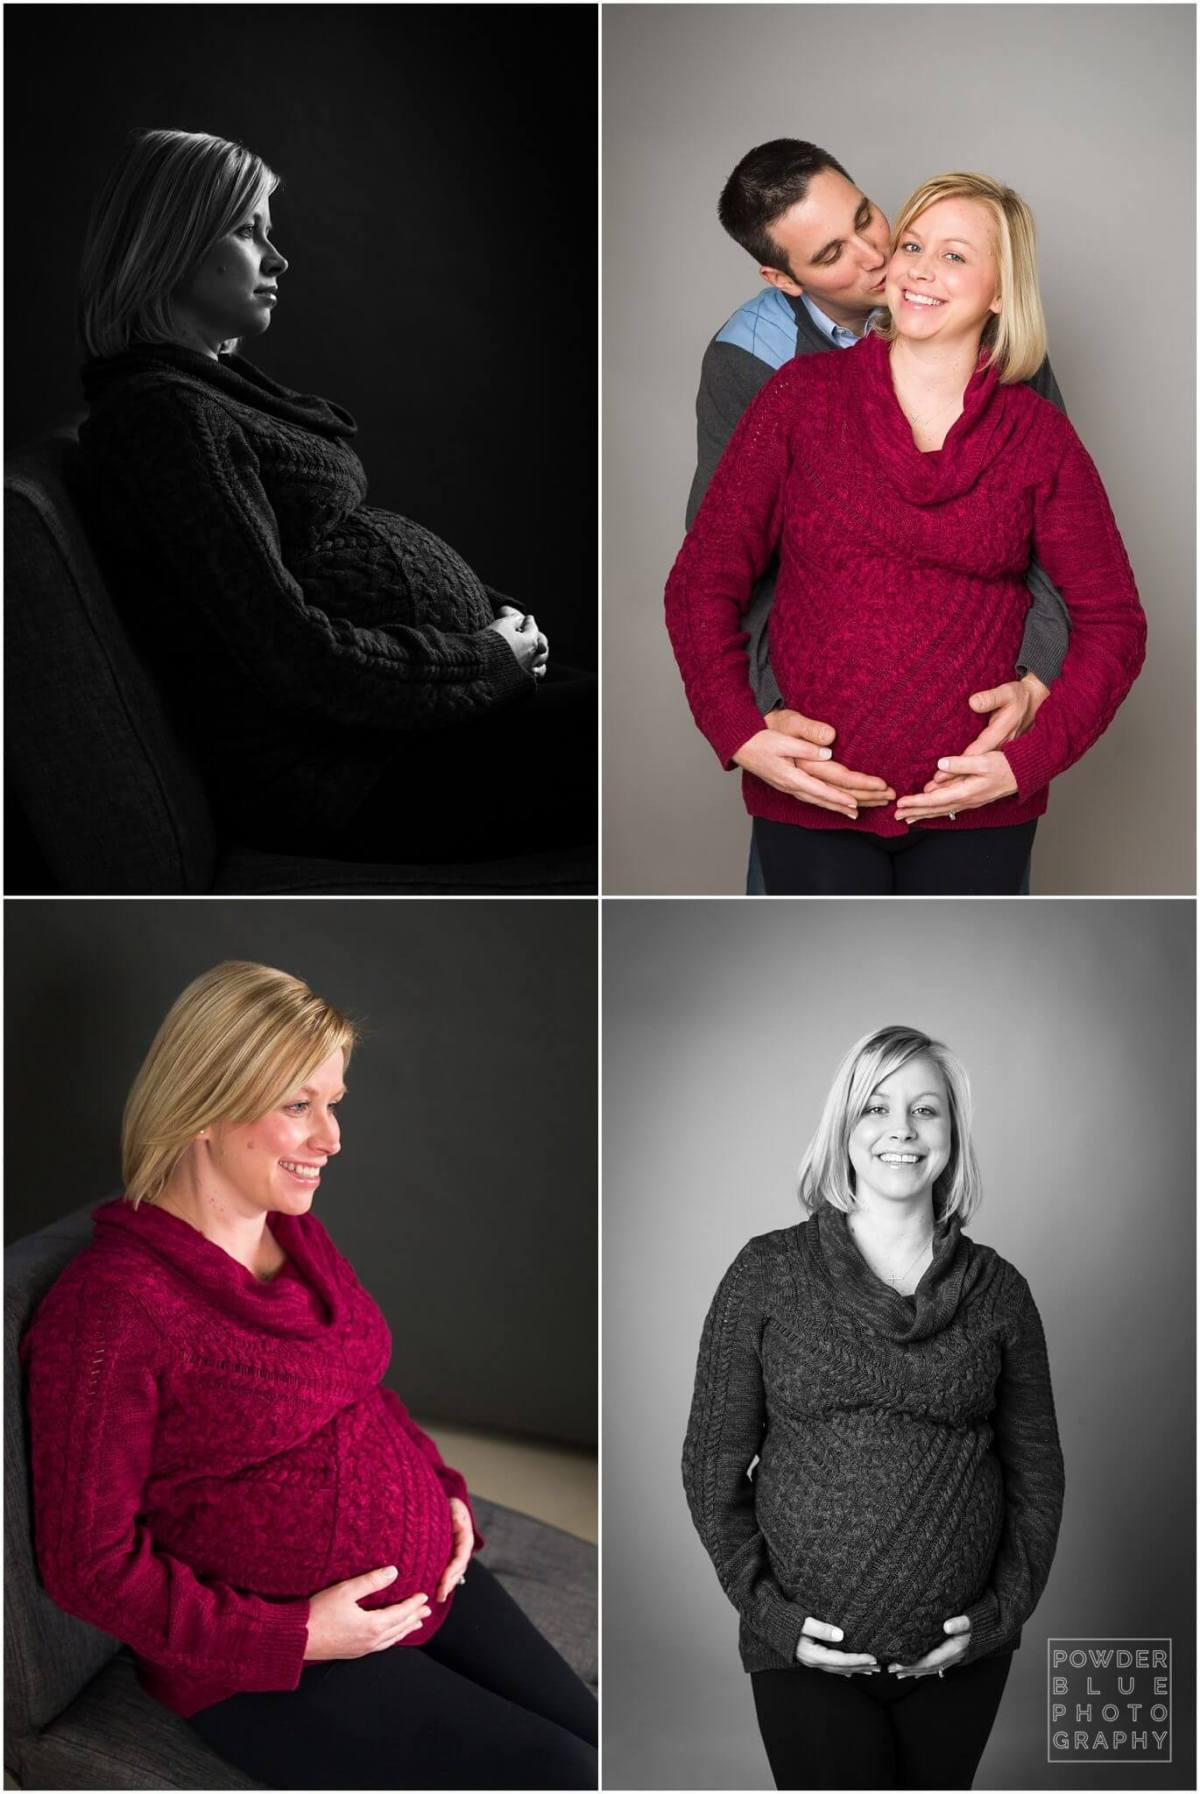 maternity portrait taken in a pittsburgh maternity photography studio. black and white and color images of twin pregnancy.